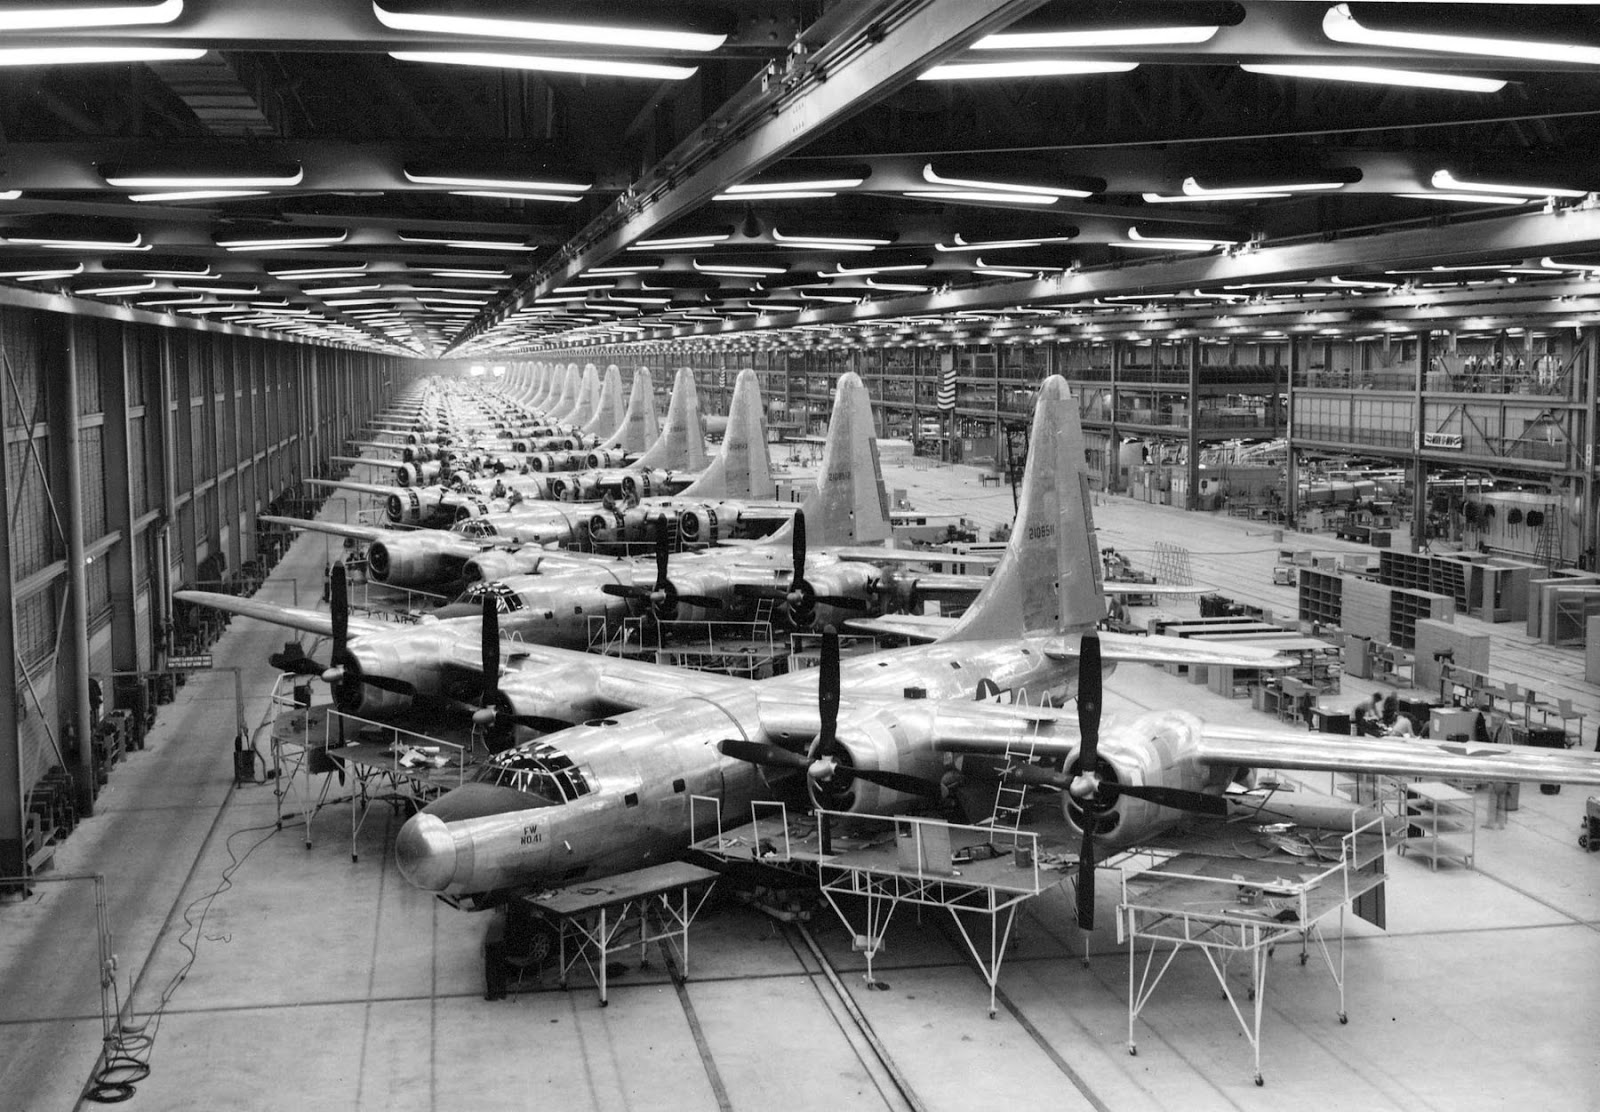 B-32 Bomber Factory in Fort W